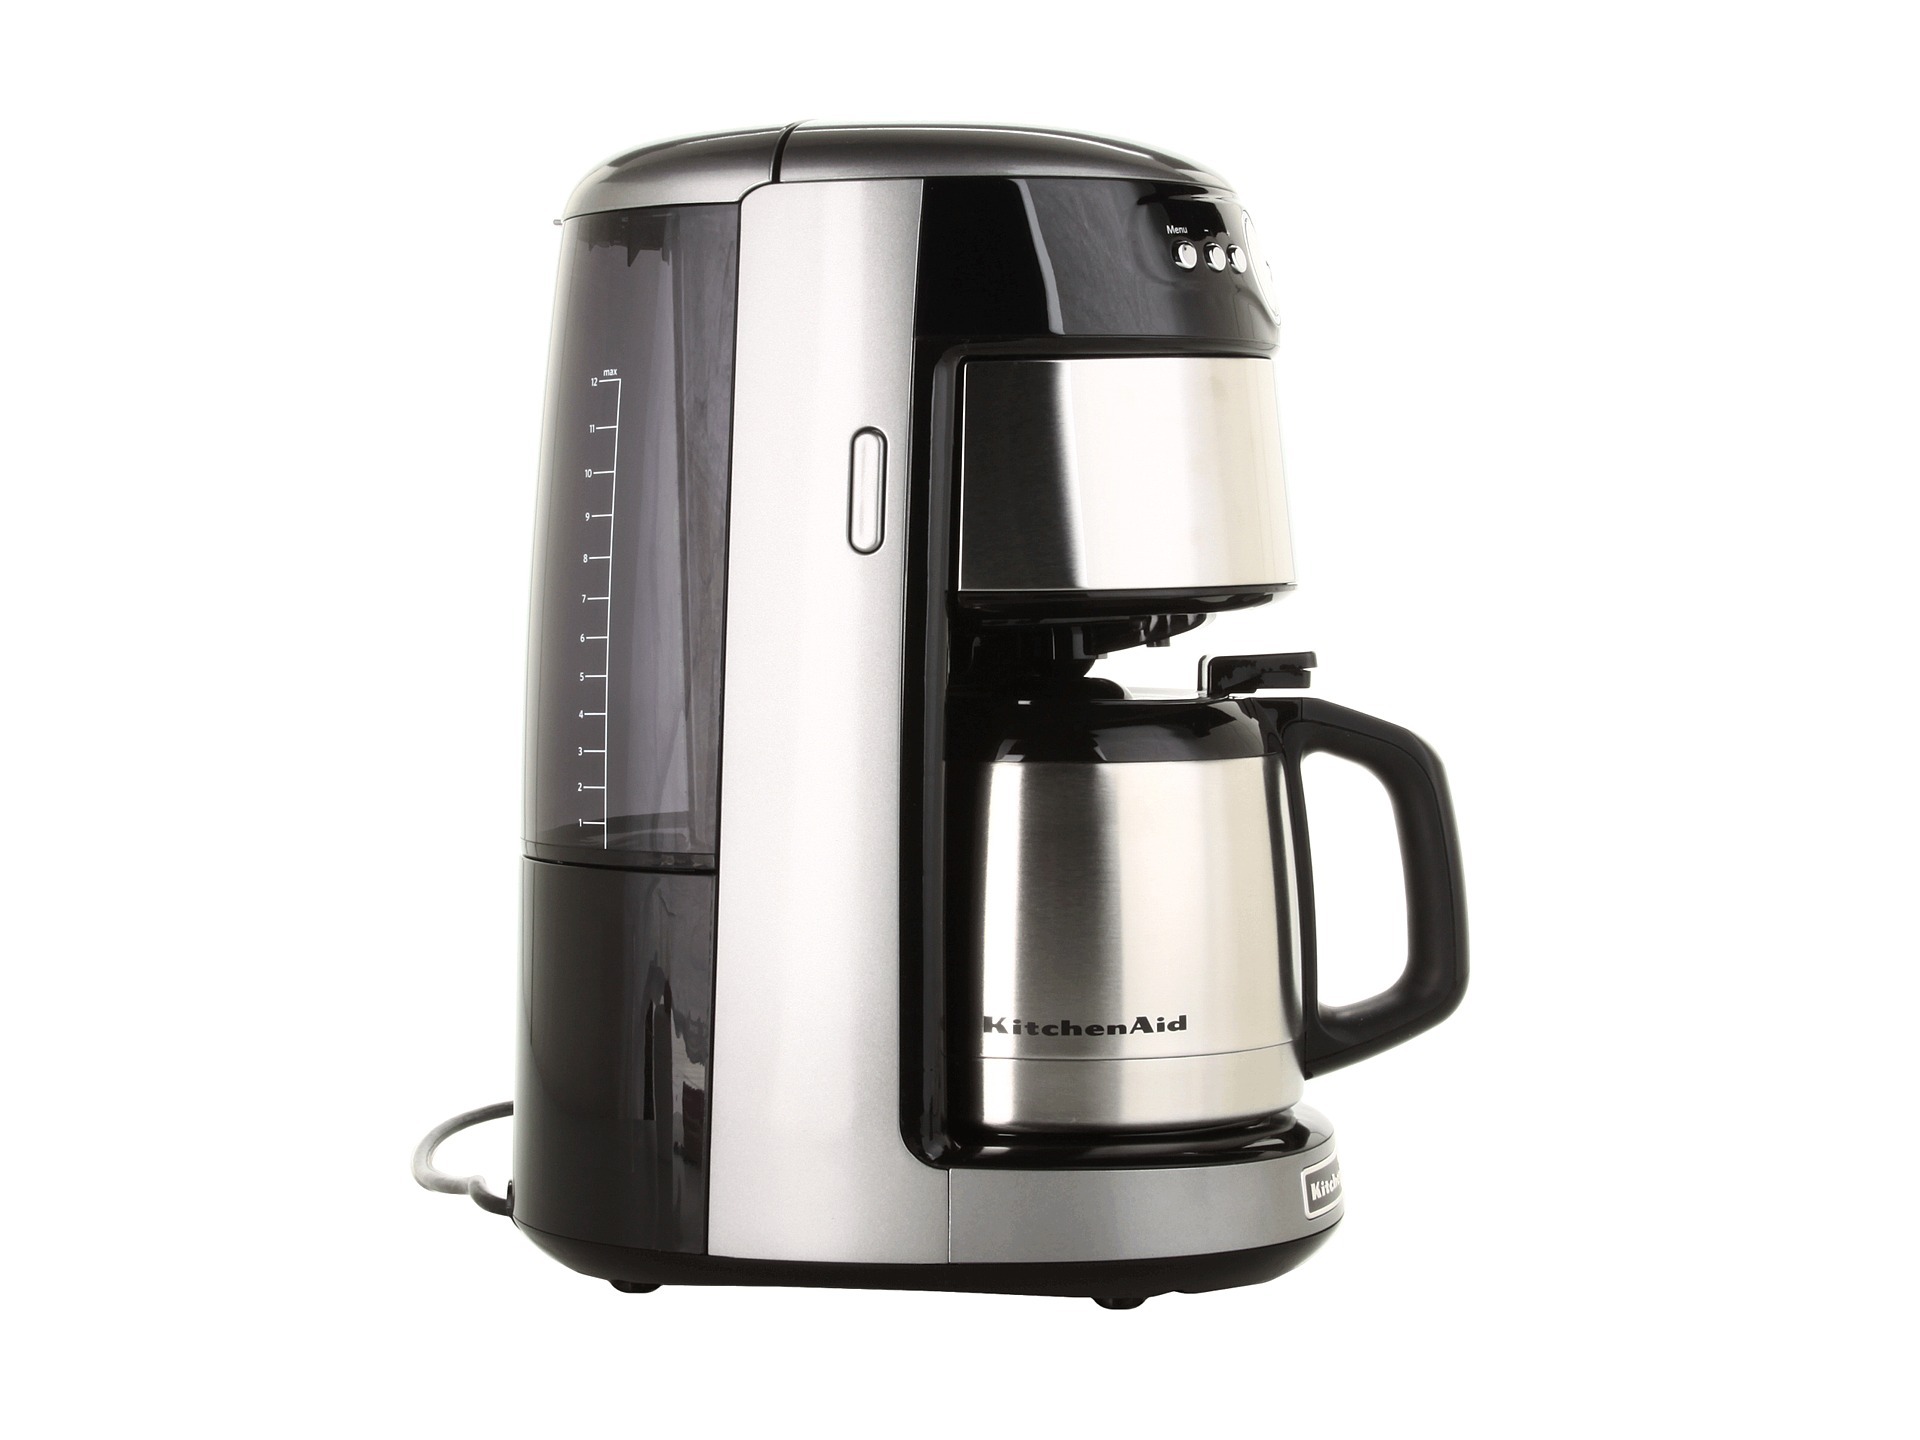 Thermal Coffee Maker With K Cup : Kitchenaid 12 Cup Thermal Coffee Maker Shipped Free at Zappos